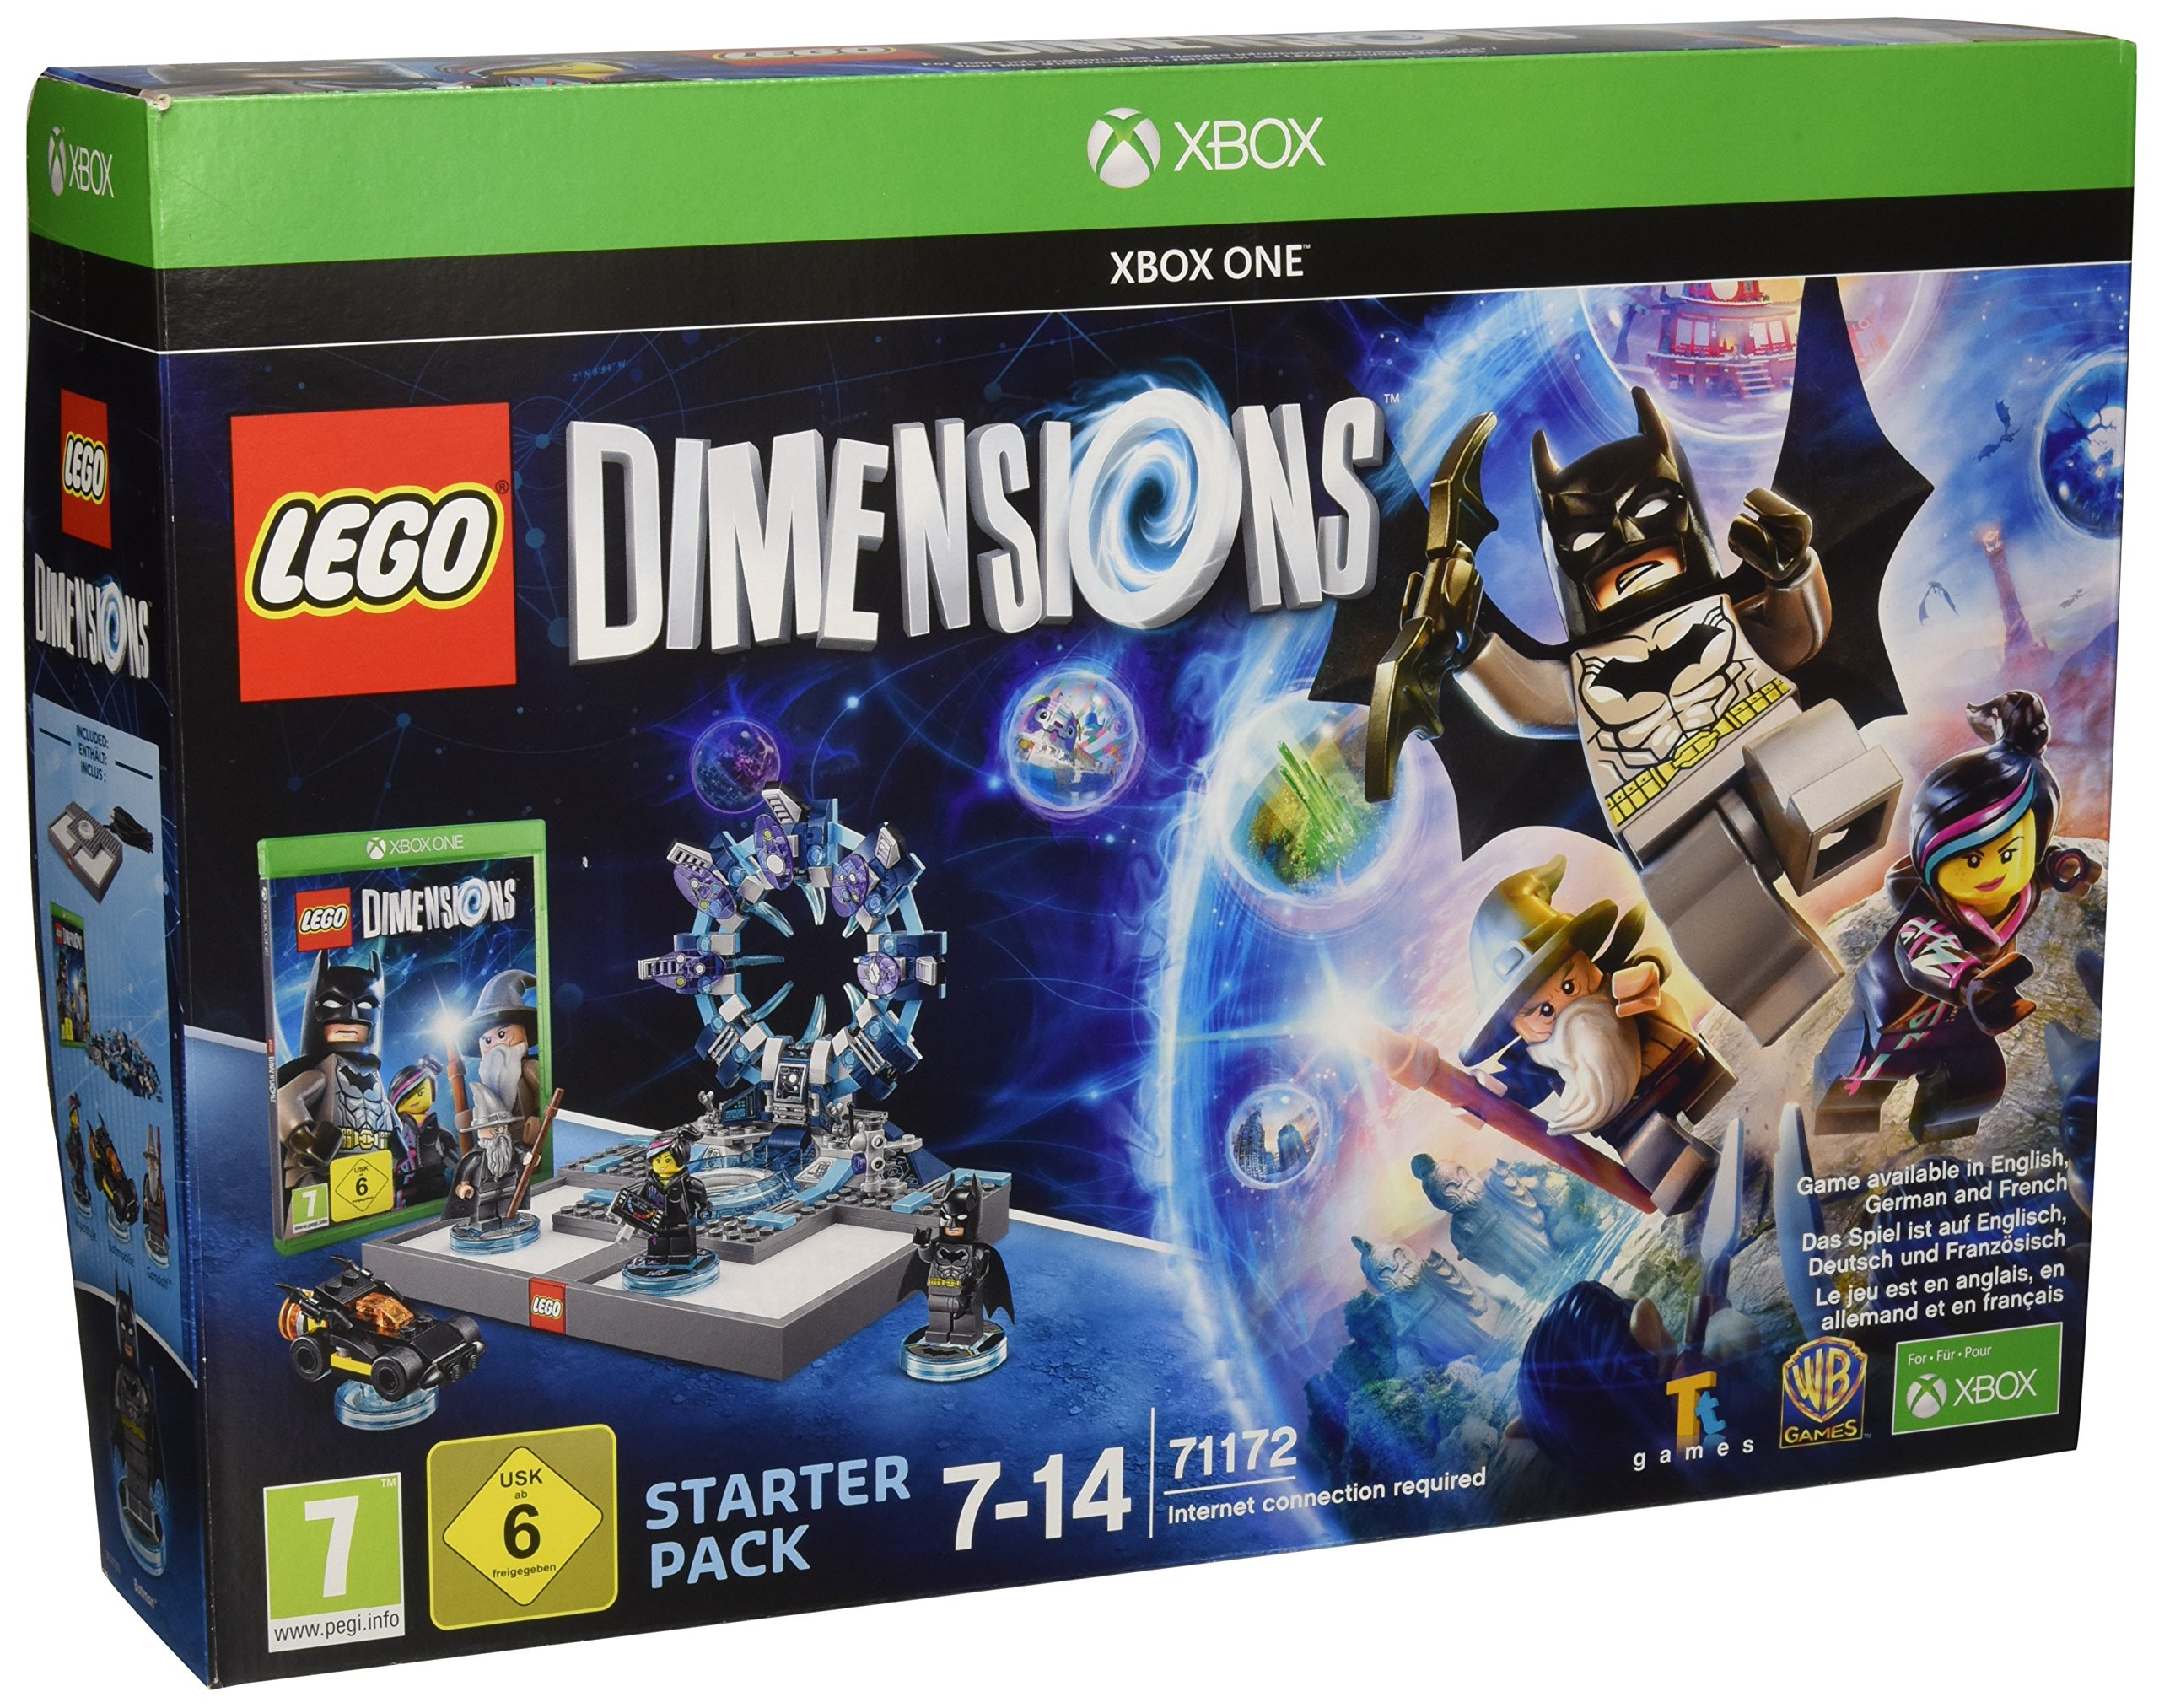 LEGO Batman Minifigure from Dimensions Starter Pack